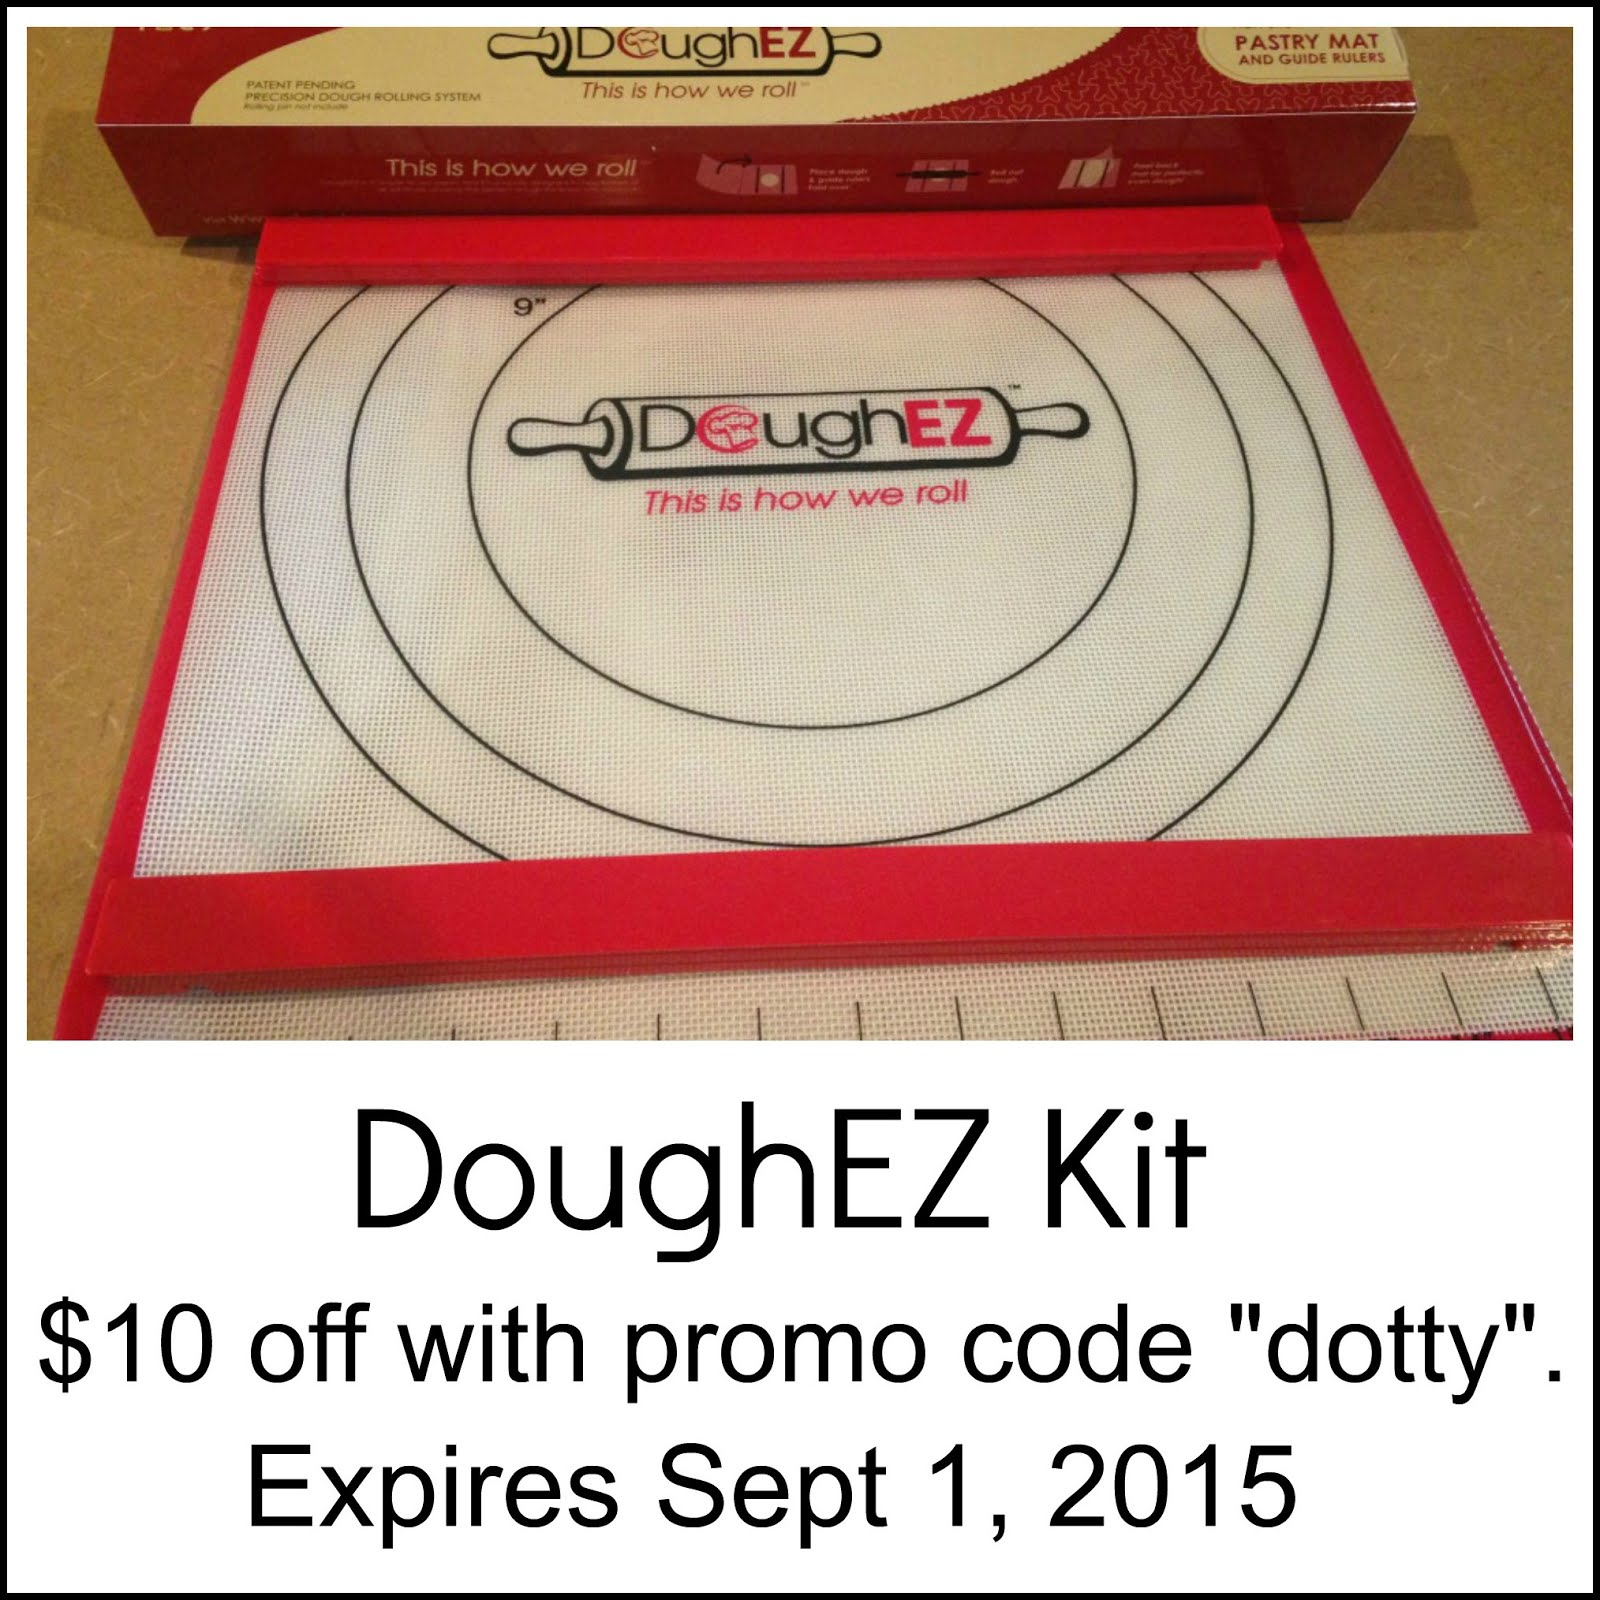 DoughEZ Offer